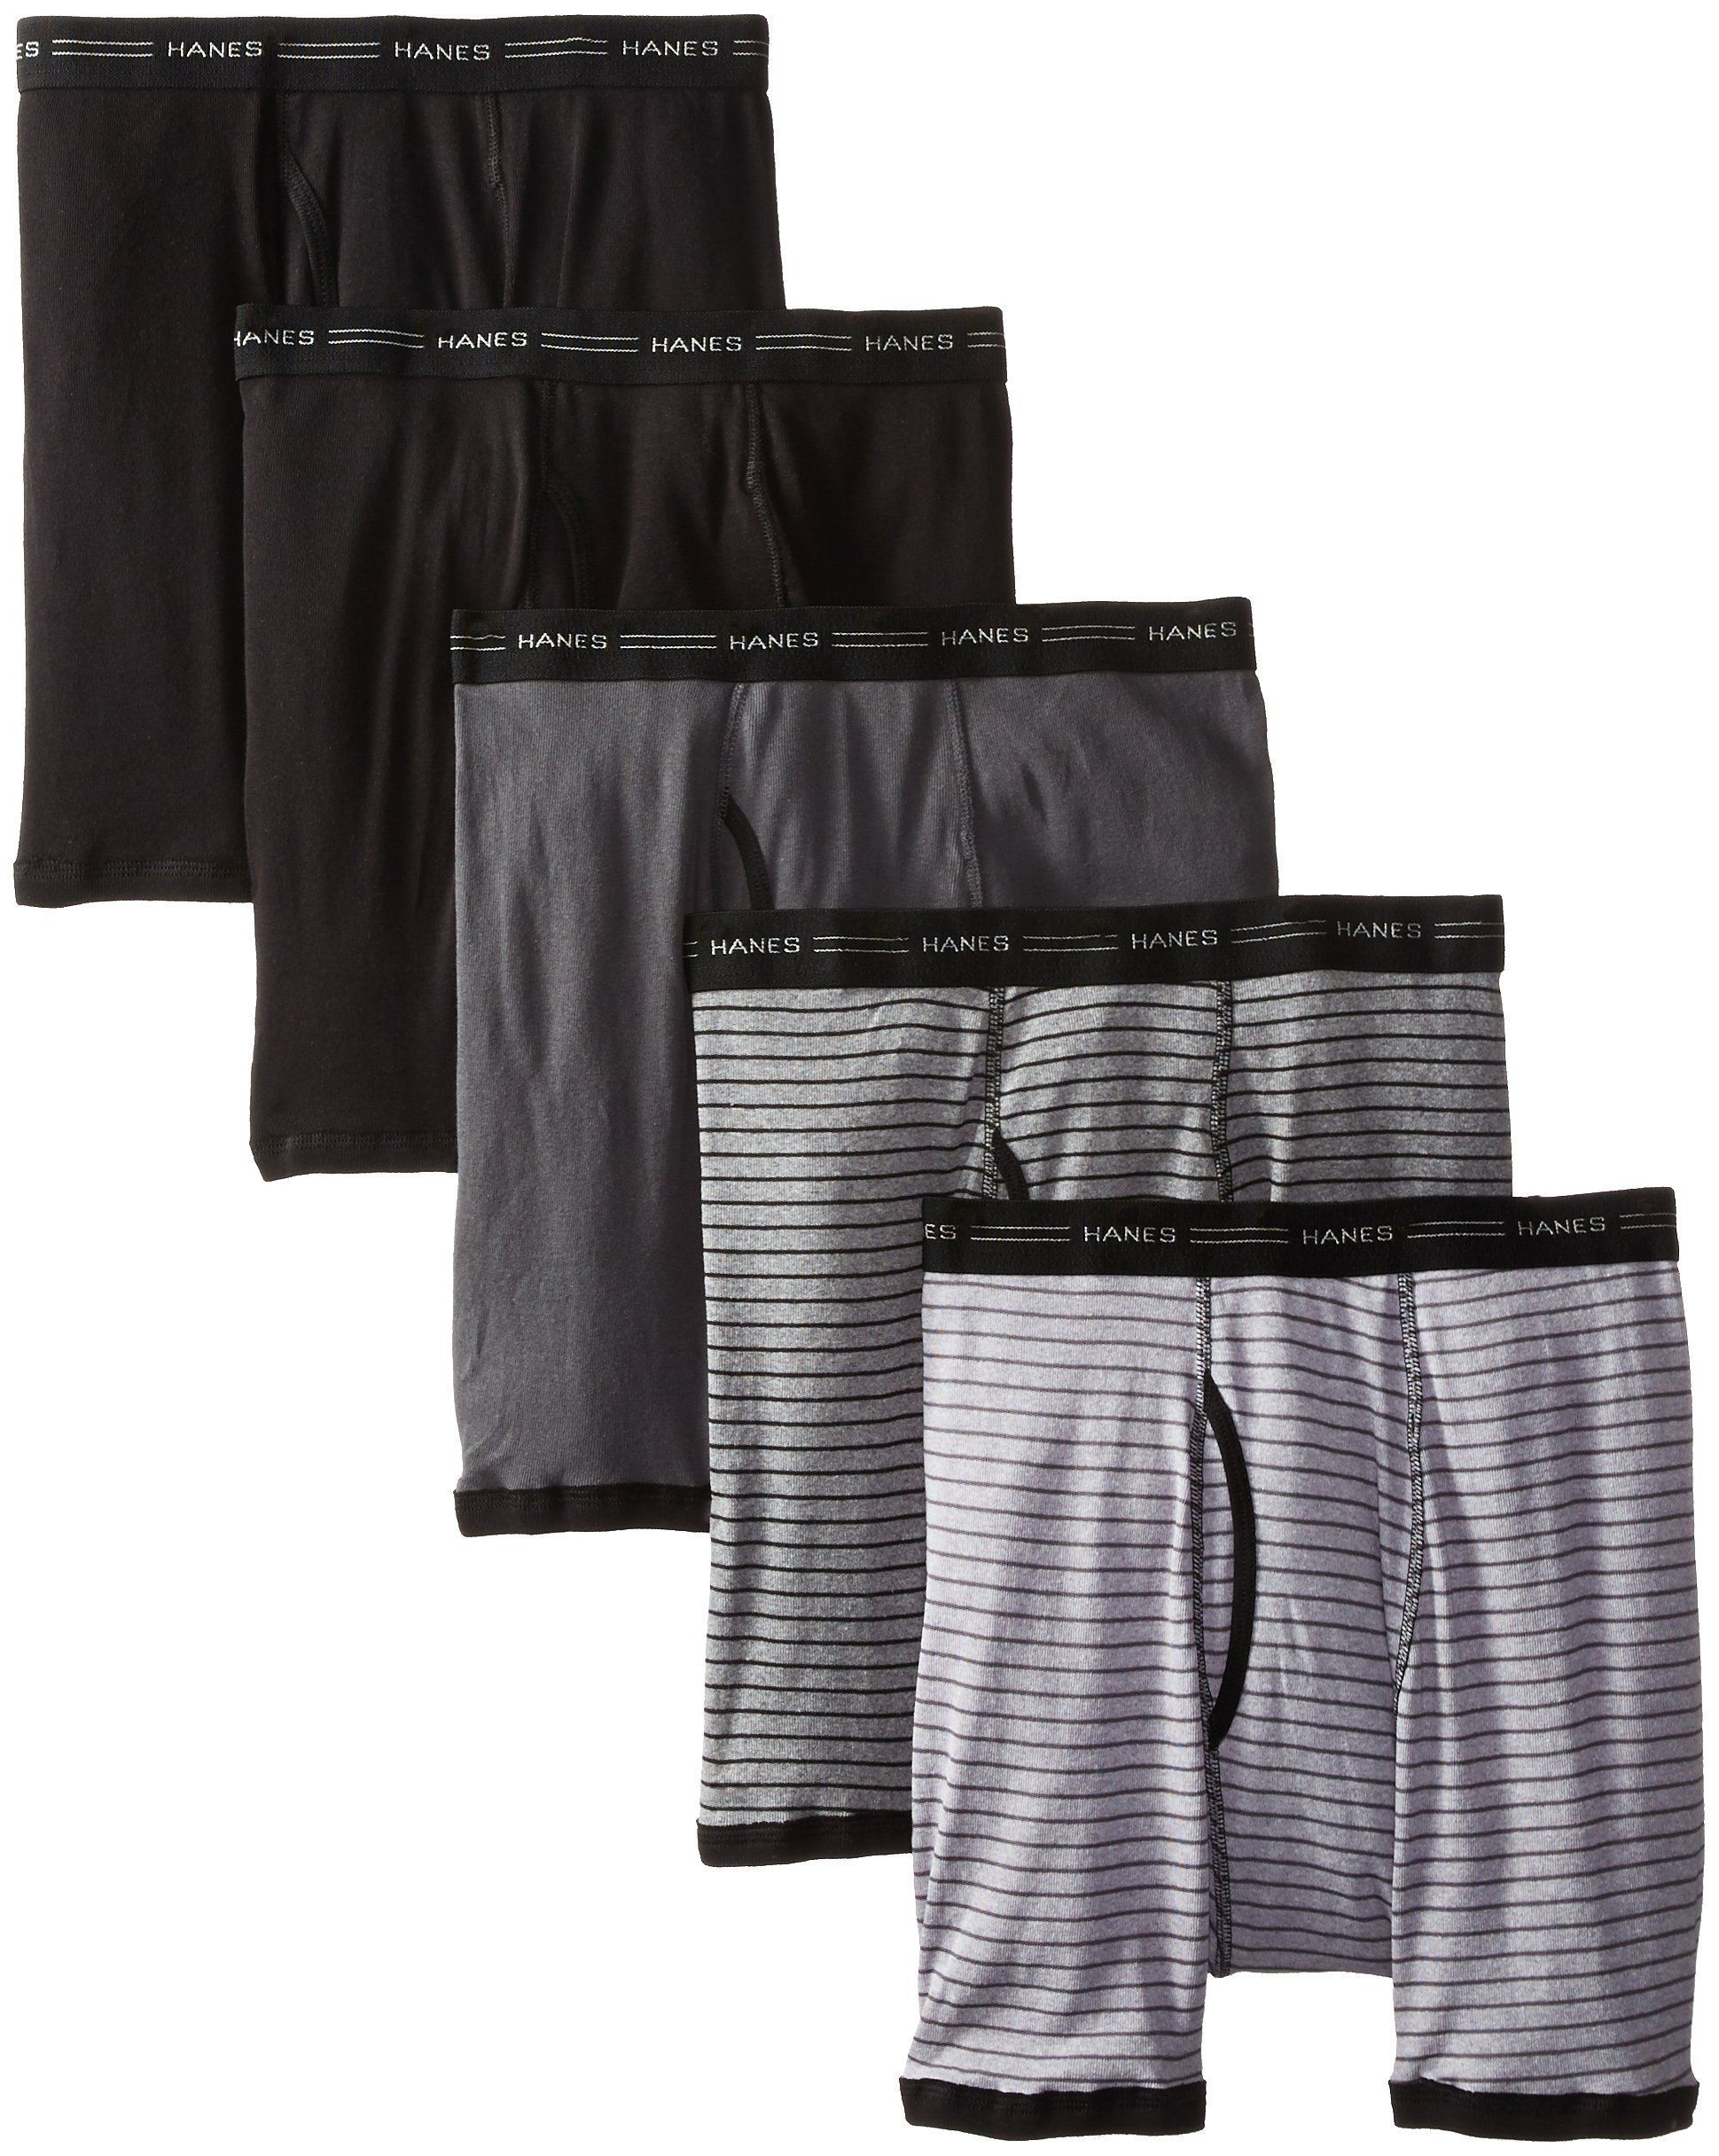 Hanes Men's 5-Pack Sports-Inspired FreshIQ Boxer Brief, Assorted, Medium